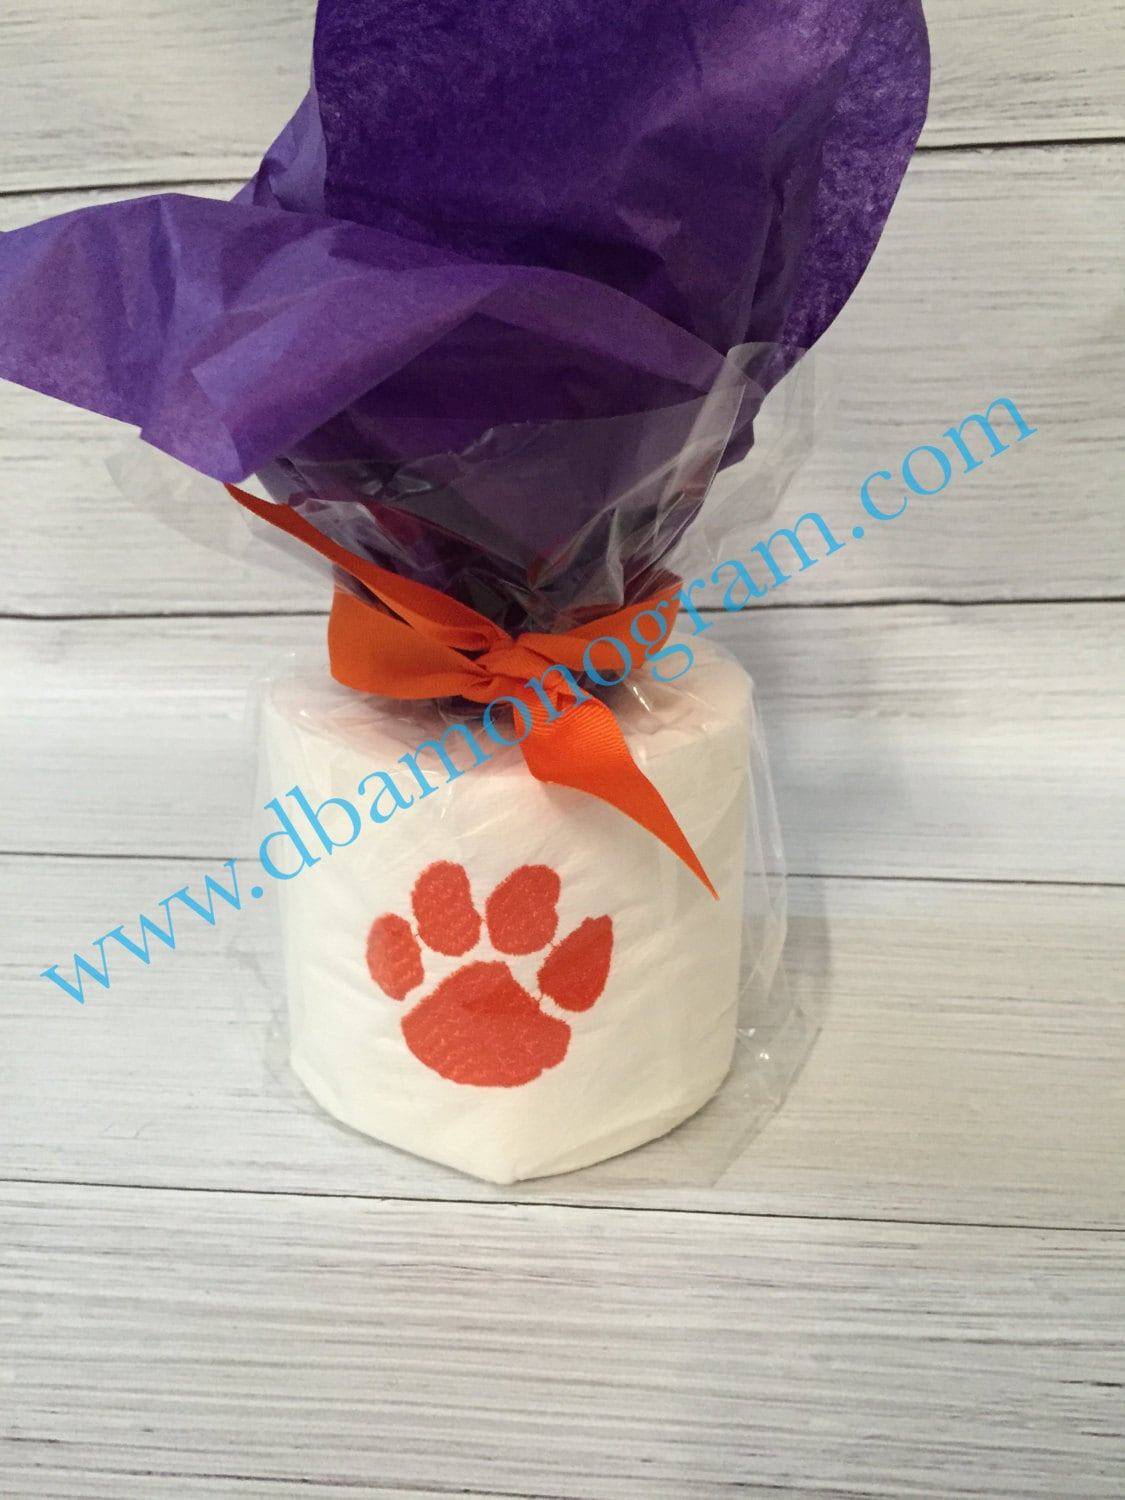 Monogrammed toilet paper embroidered clemson by for Design your own toilet paper